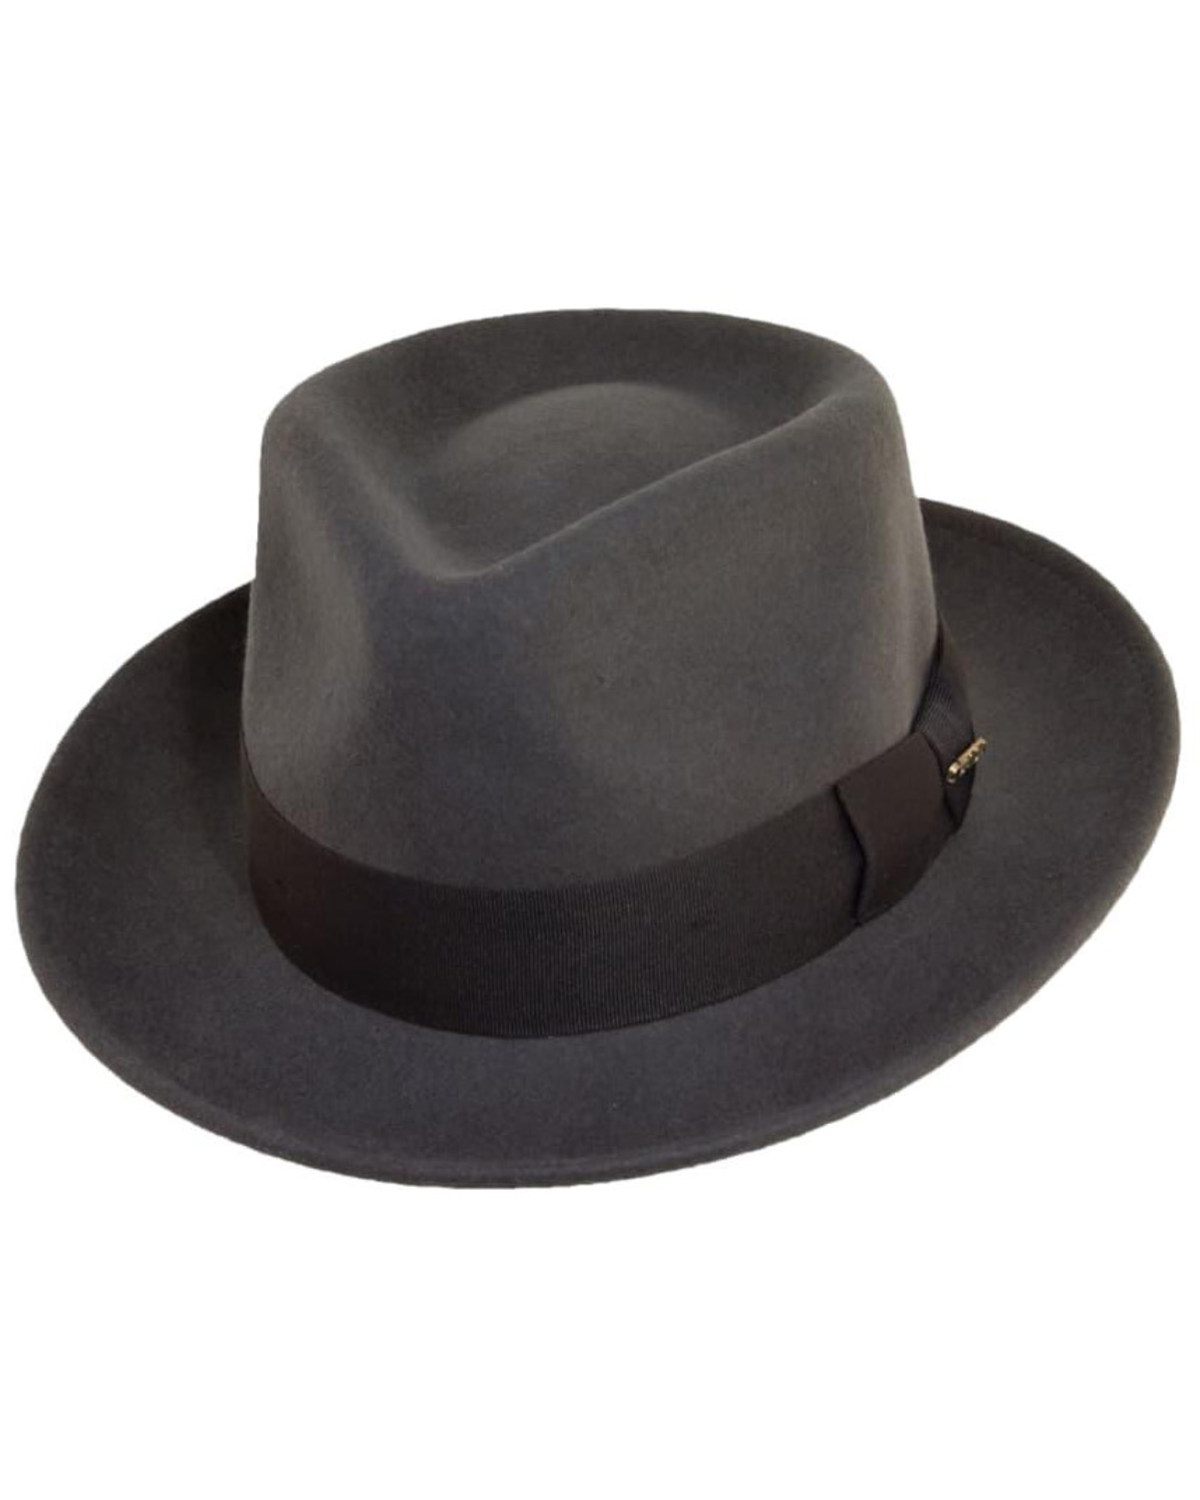 76d4c5eb74e26 Scala Fashion Gray Wool Felt with Grosgrain Trim Fedora Hat